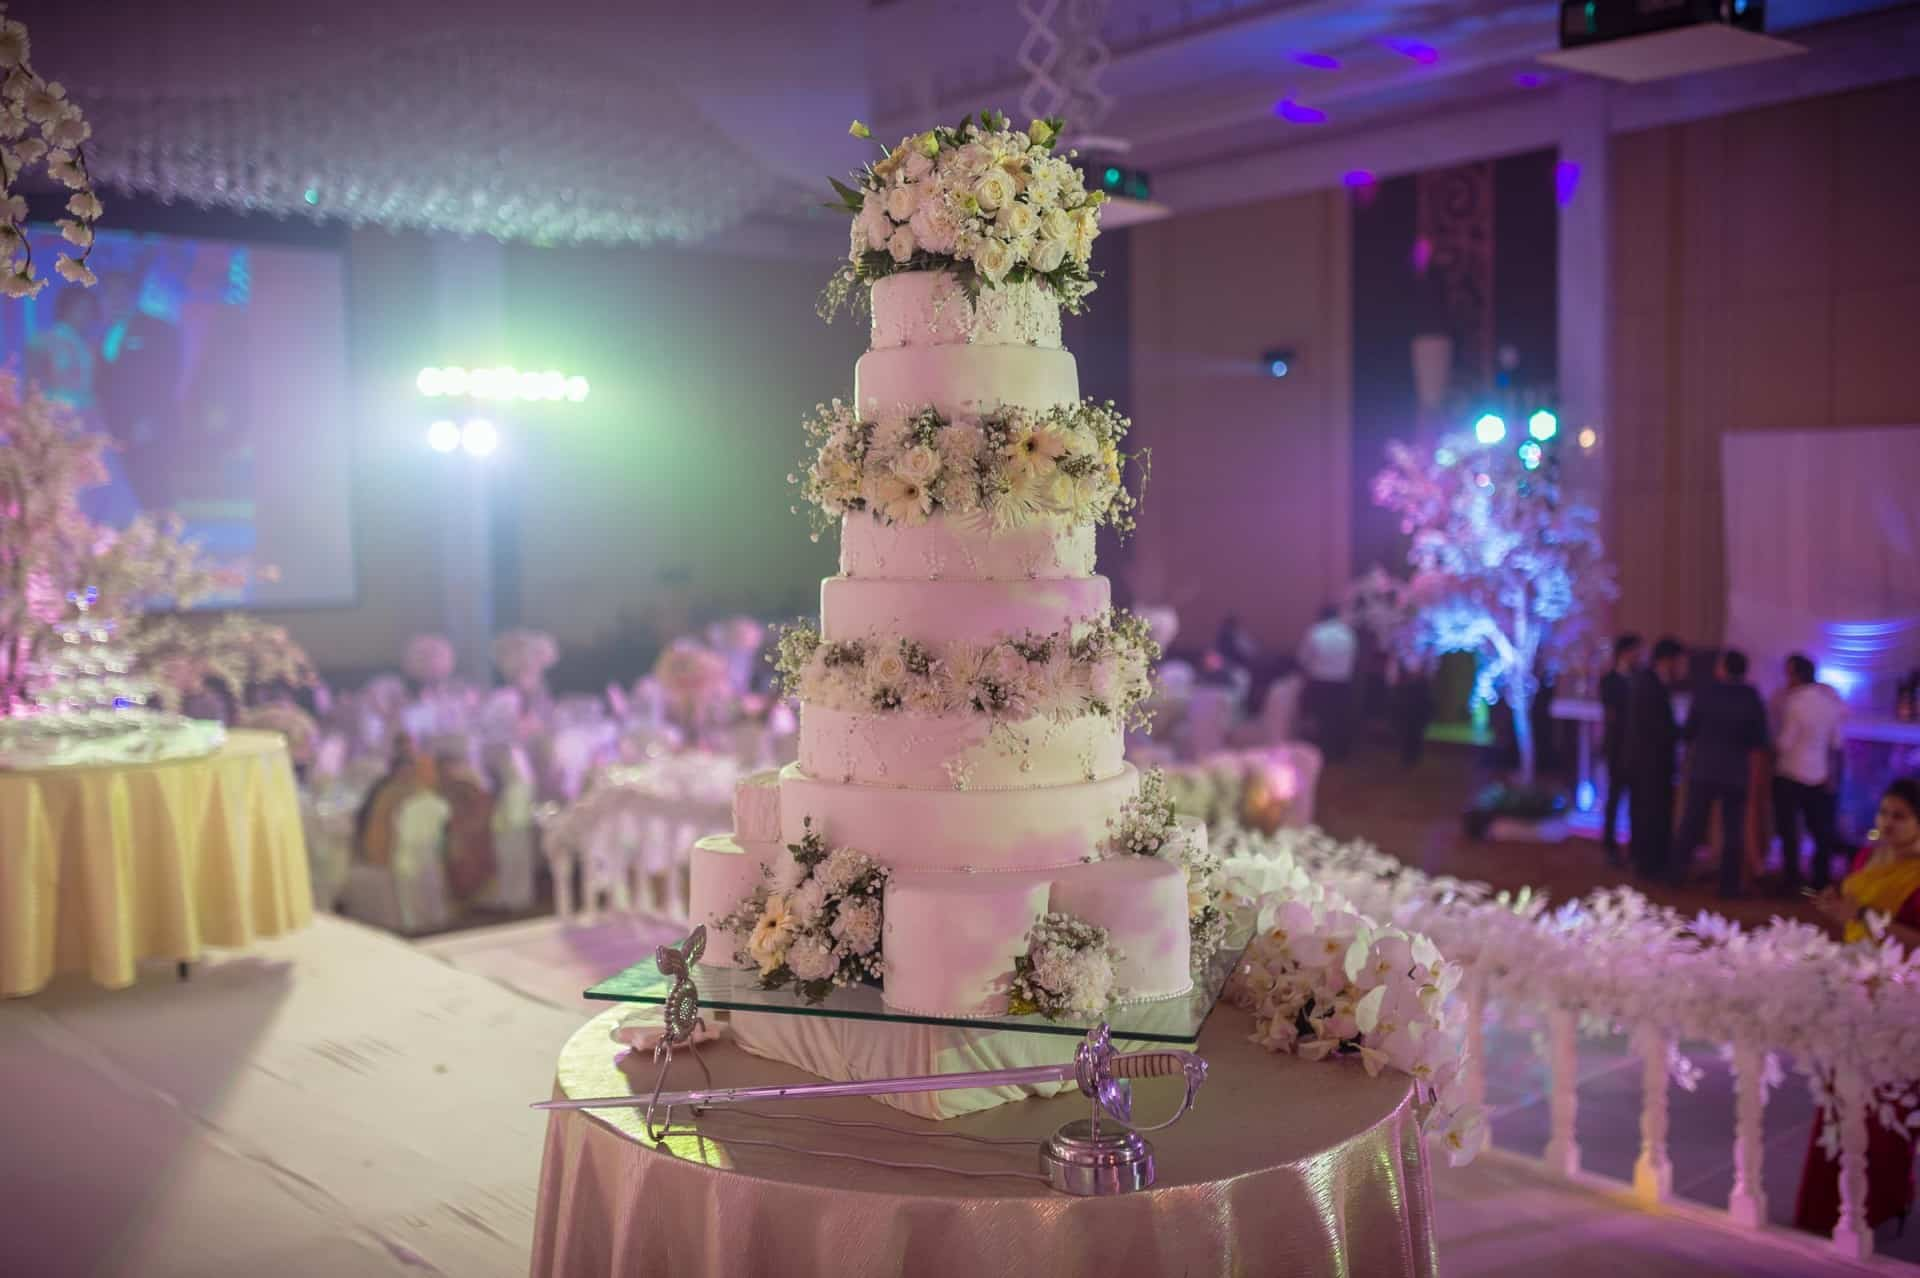 Top Destination Wedding Photographer Thailand | Venue Sheraton Huahin Reception Cake Pre-Wedding Photography Thailand